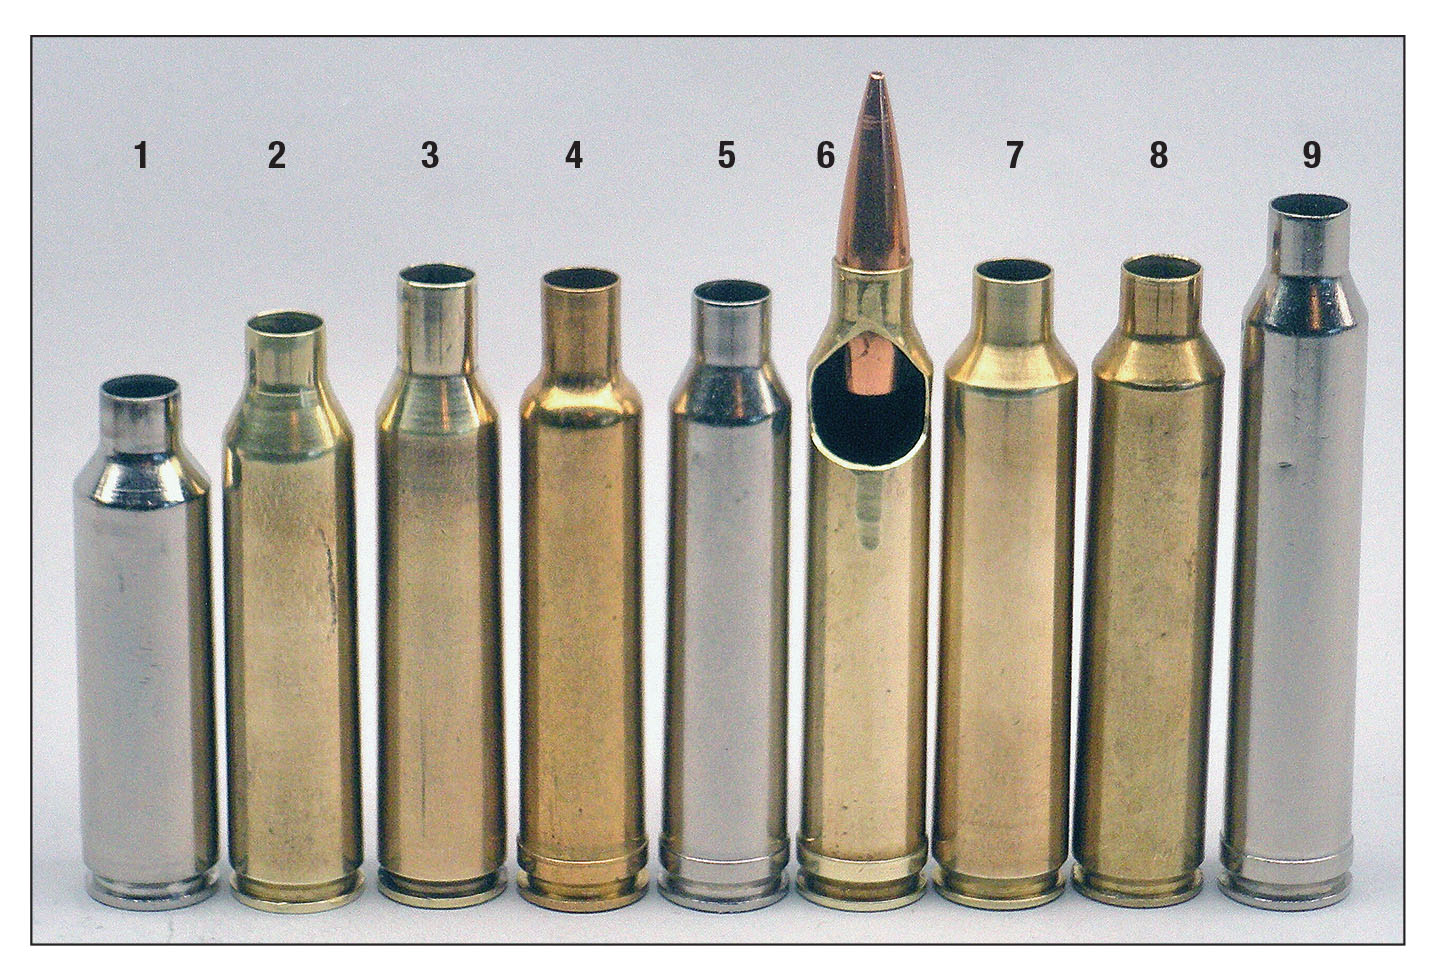 The sectioned 7mm-300 Winchester Magnum (6) shows seating depth for a Berger 140-grain VLD that is representative for all the cartridges shown: (1) 7mm WSM, (2) 7mm-404, (3) 7mm Newton, (4) 7mm Weatherby Magnum, (5) 7mm Remington Magnum, (7) .28 Nosler, (8) 7mm-375 Ruger and (9) 7mm STW.